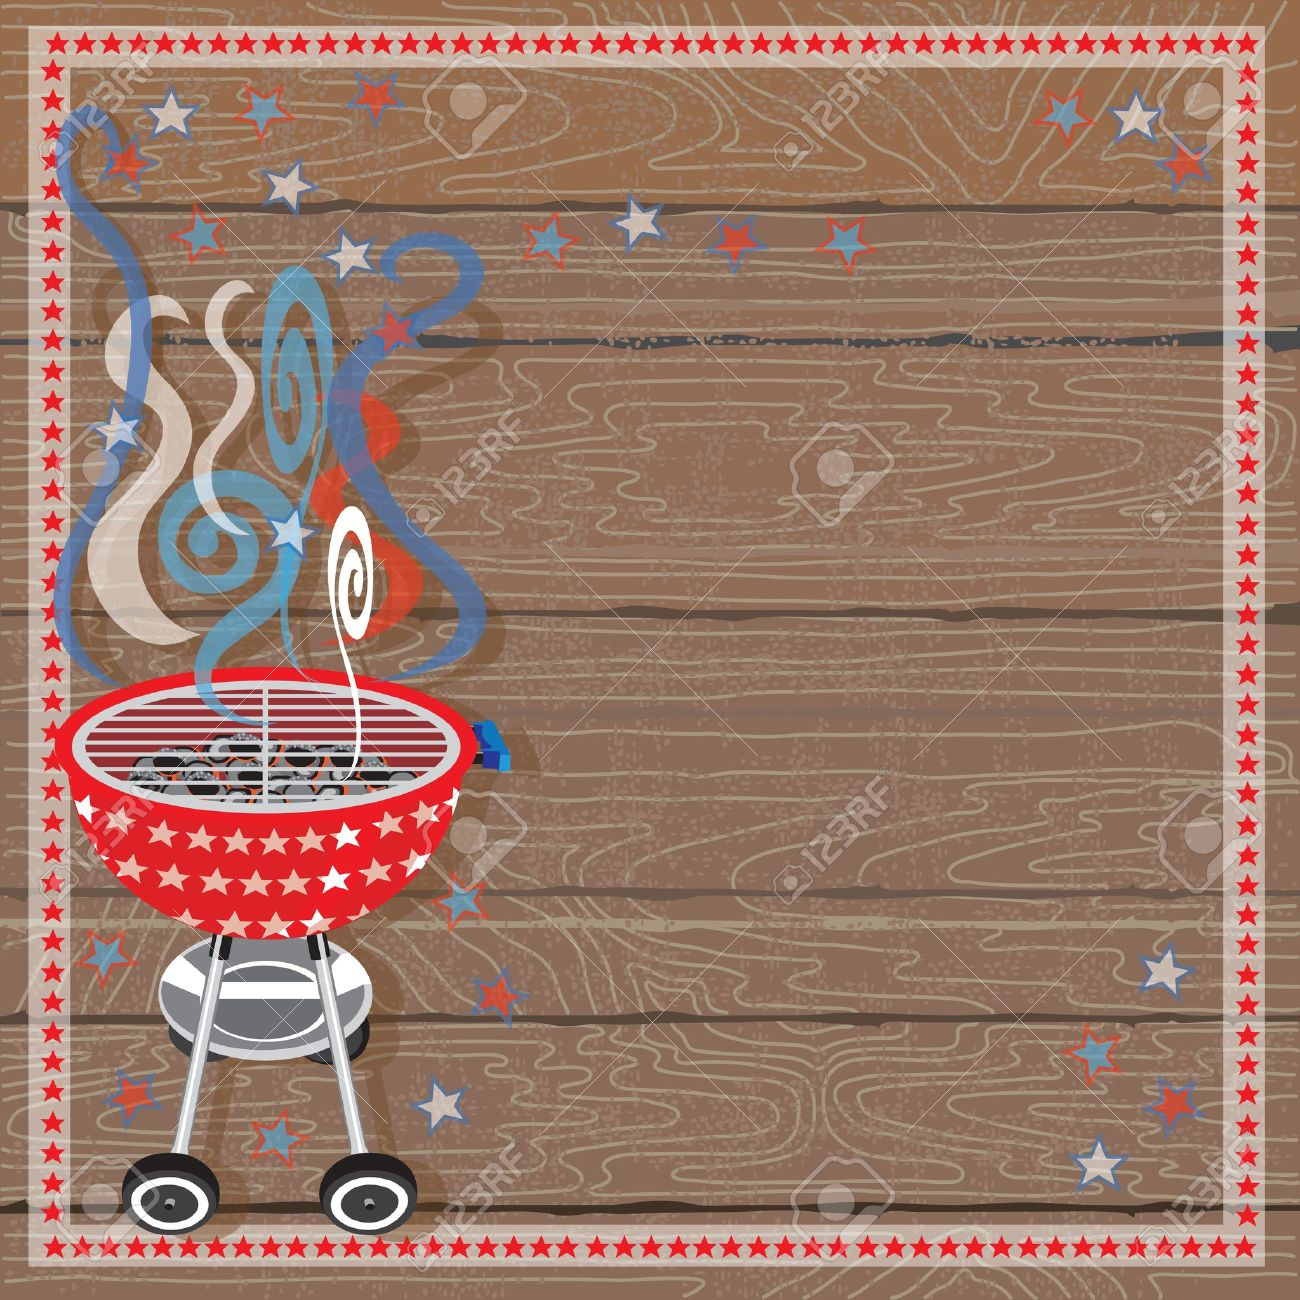 Cookout border clipart hot dog cookout invite stock vector art - Charcoal Grill Rustic Patriotic Bbq Party Invitation